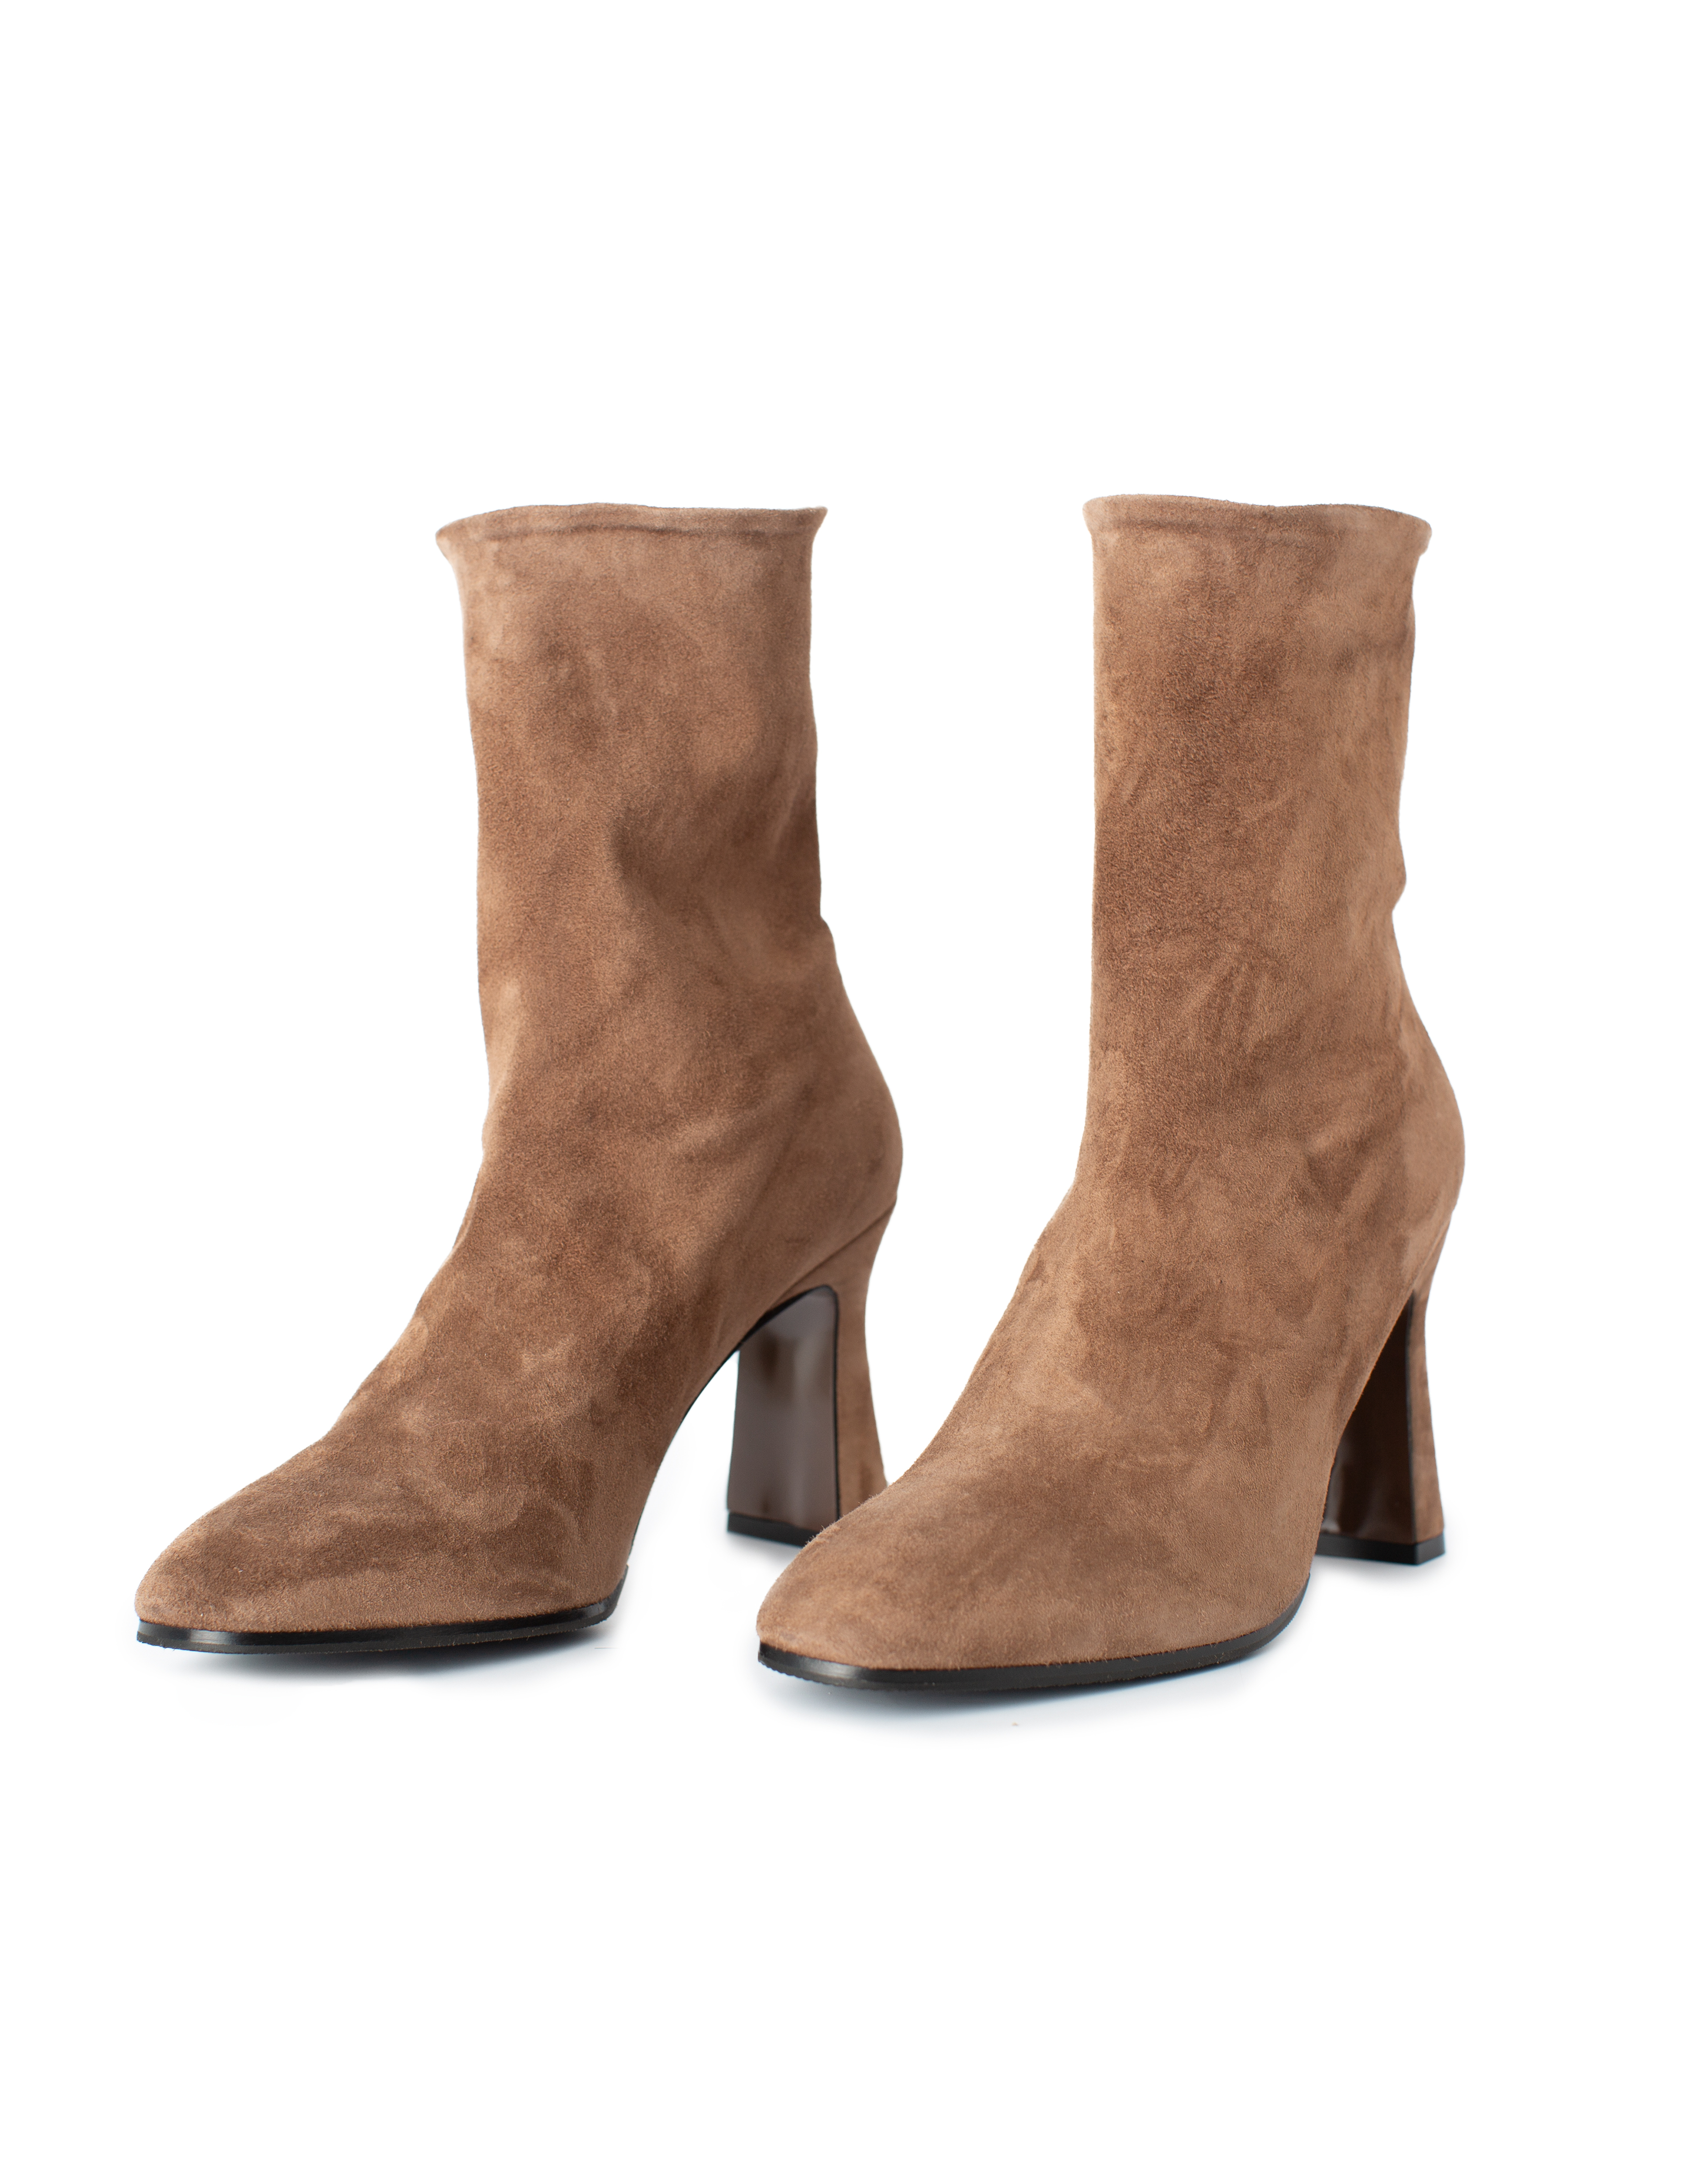 Suede Leather Boots, beige